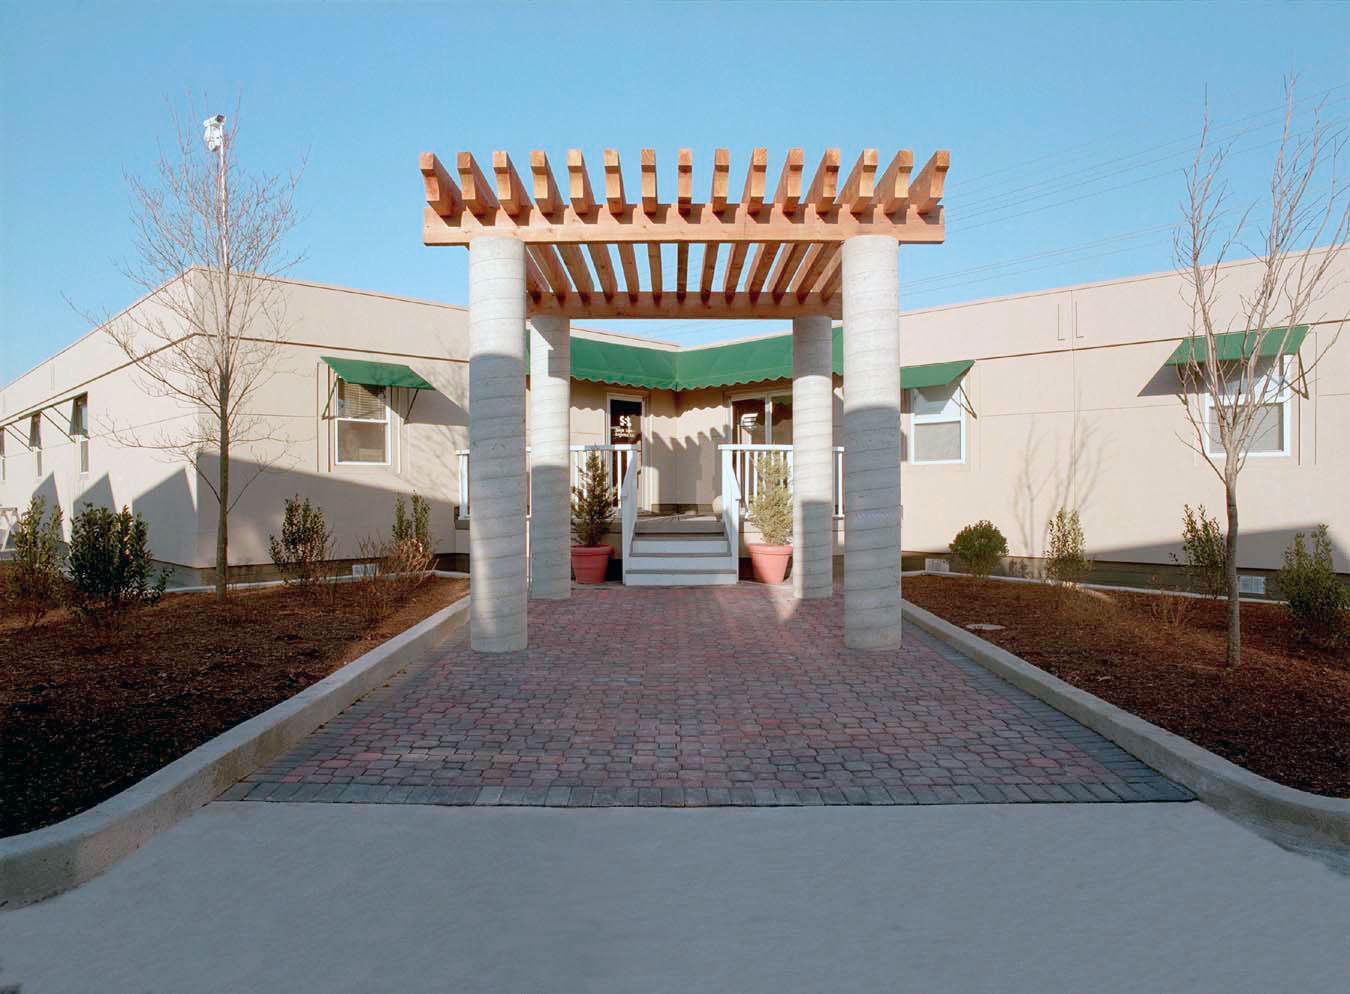 Exterior awnings for a modular structure